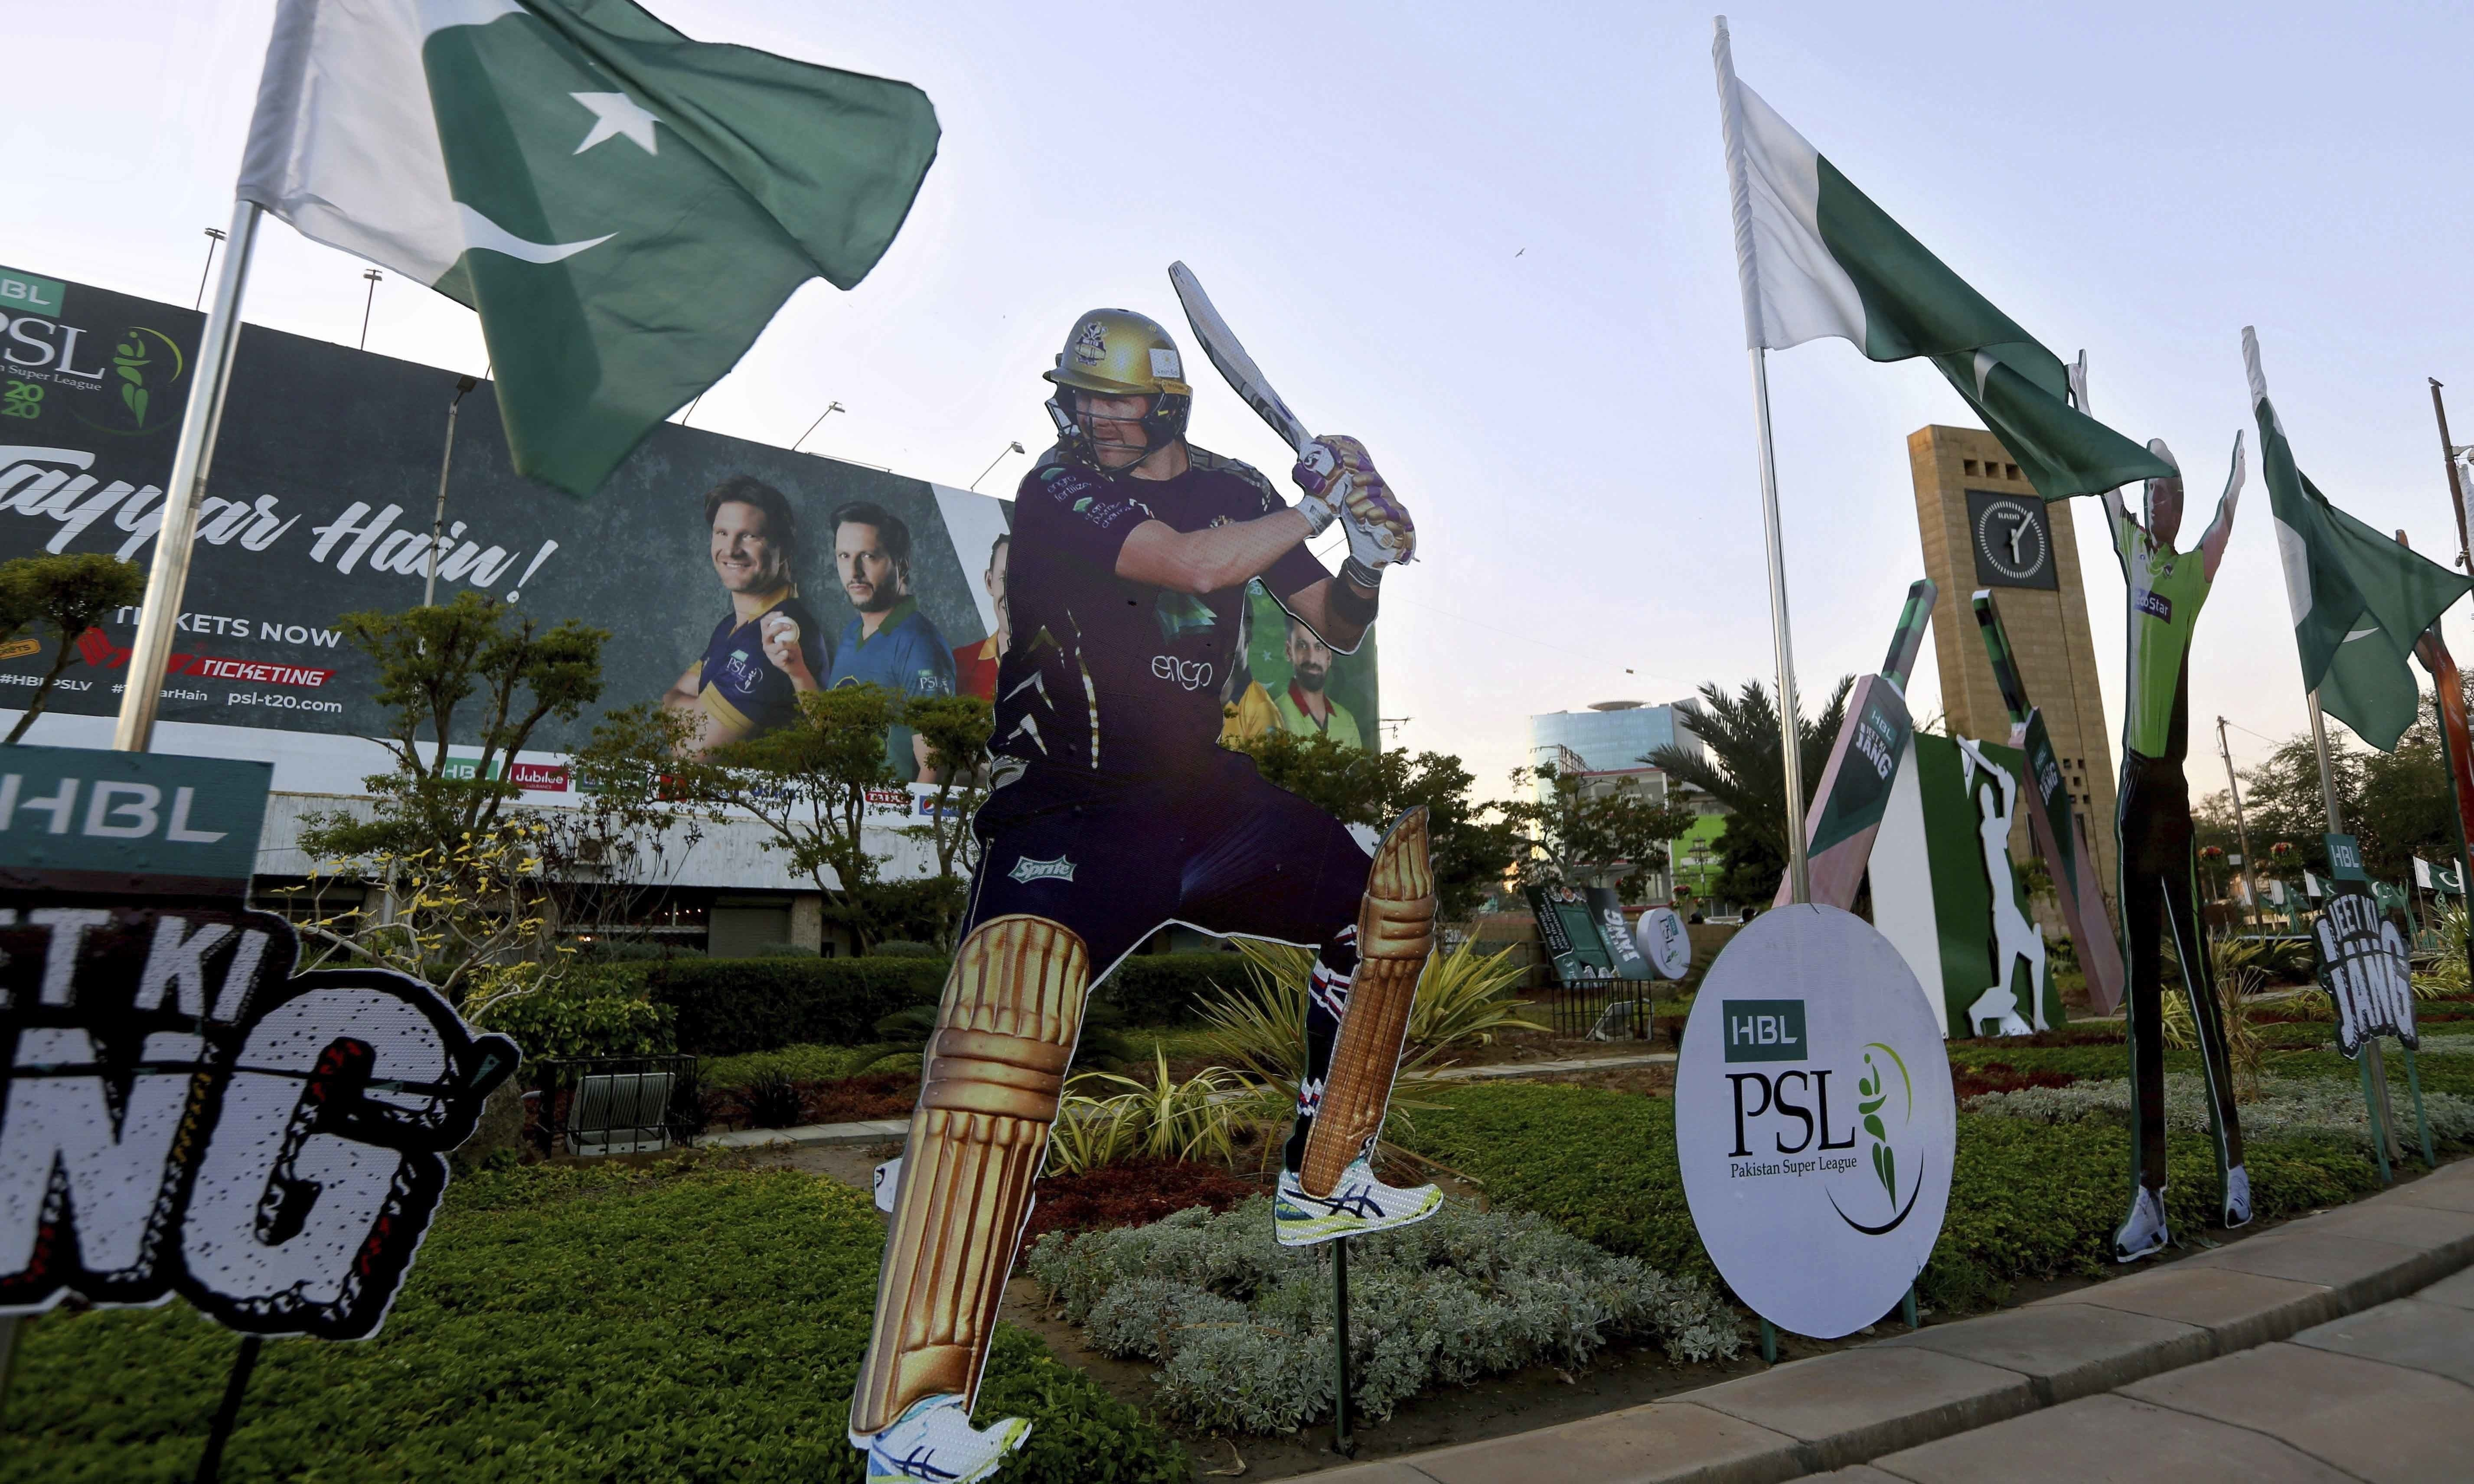 The remaining PSL matches will be staged in Abu Dhabi. — AP/File